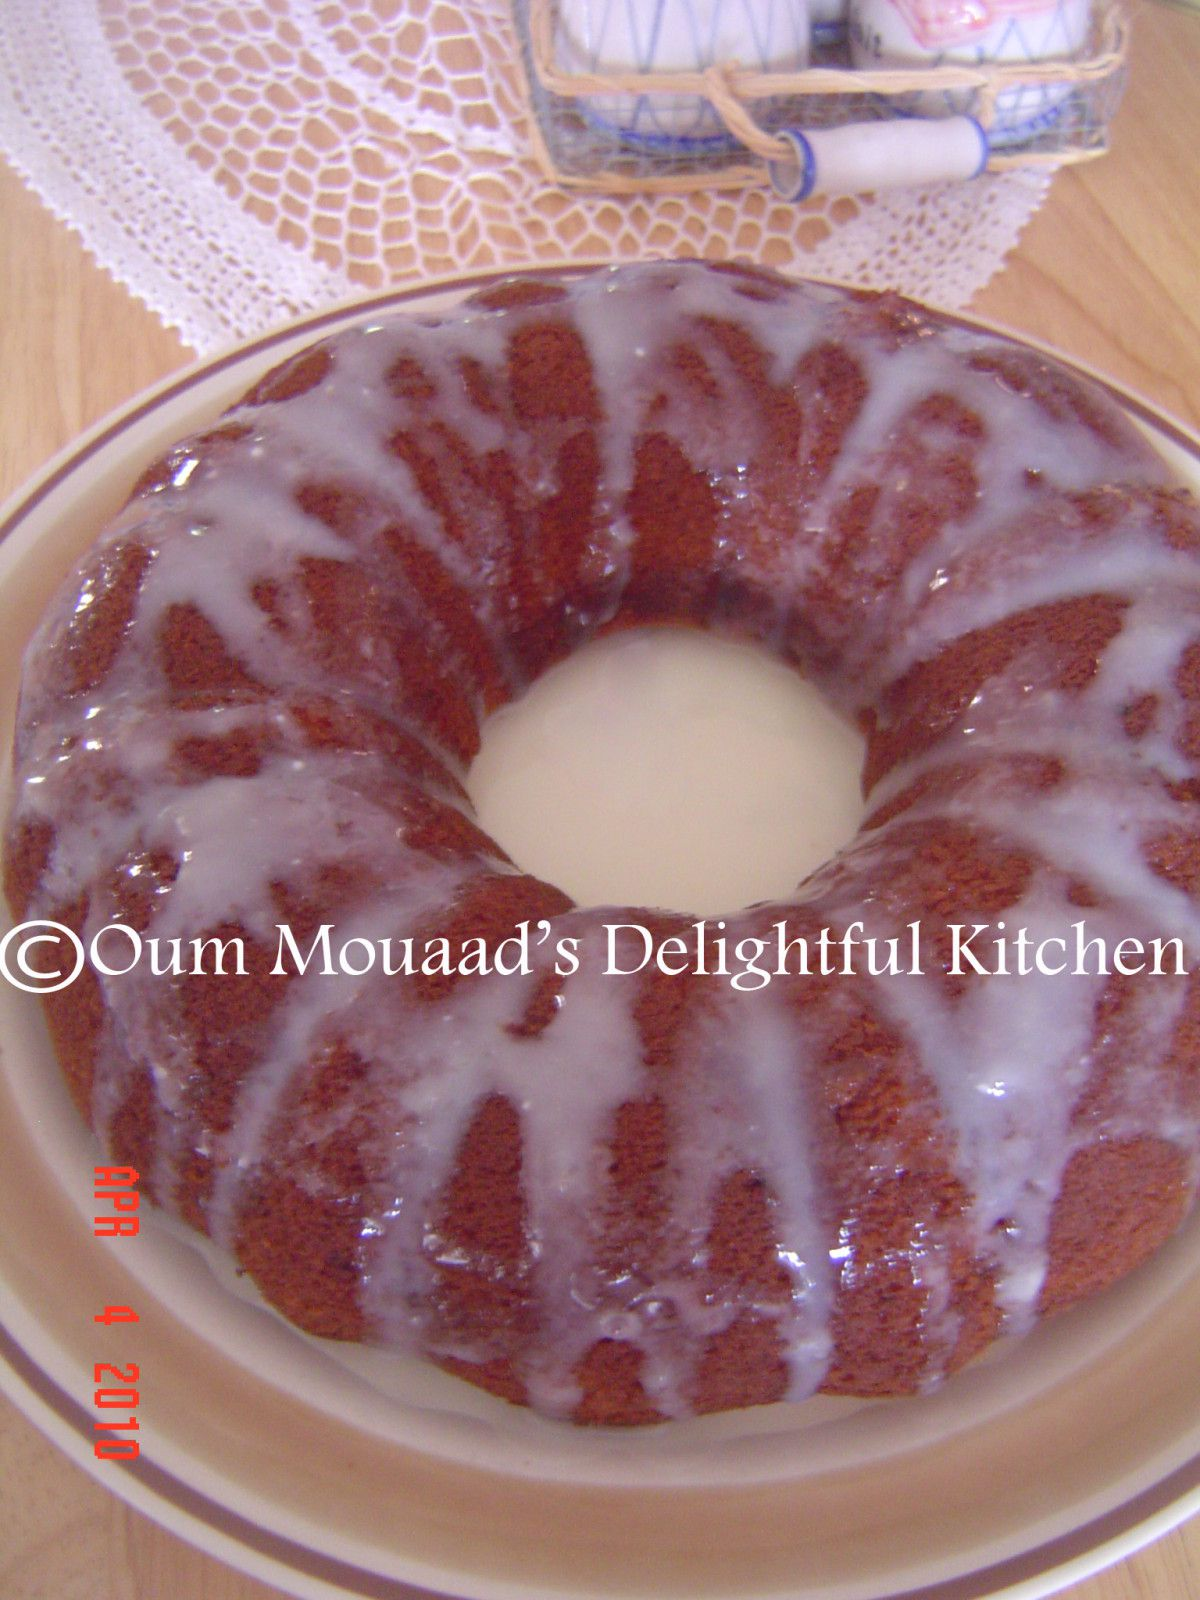 http://idata.over-blog.com/3/19/56/81/Lemon-Yogurt-Coffee-Cake/Lemon-Yogurt-Cake2.jpg